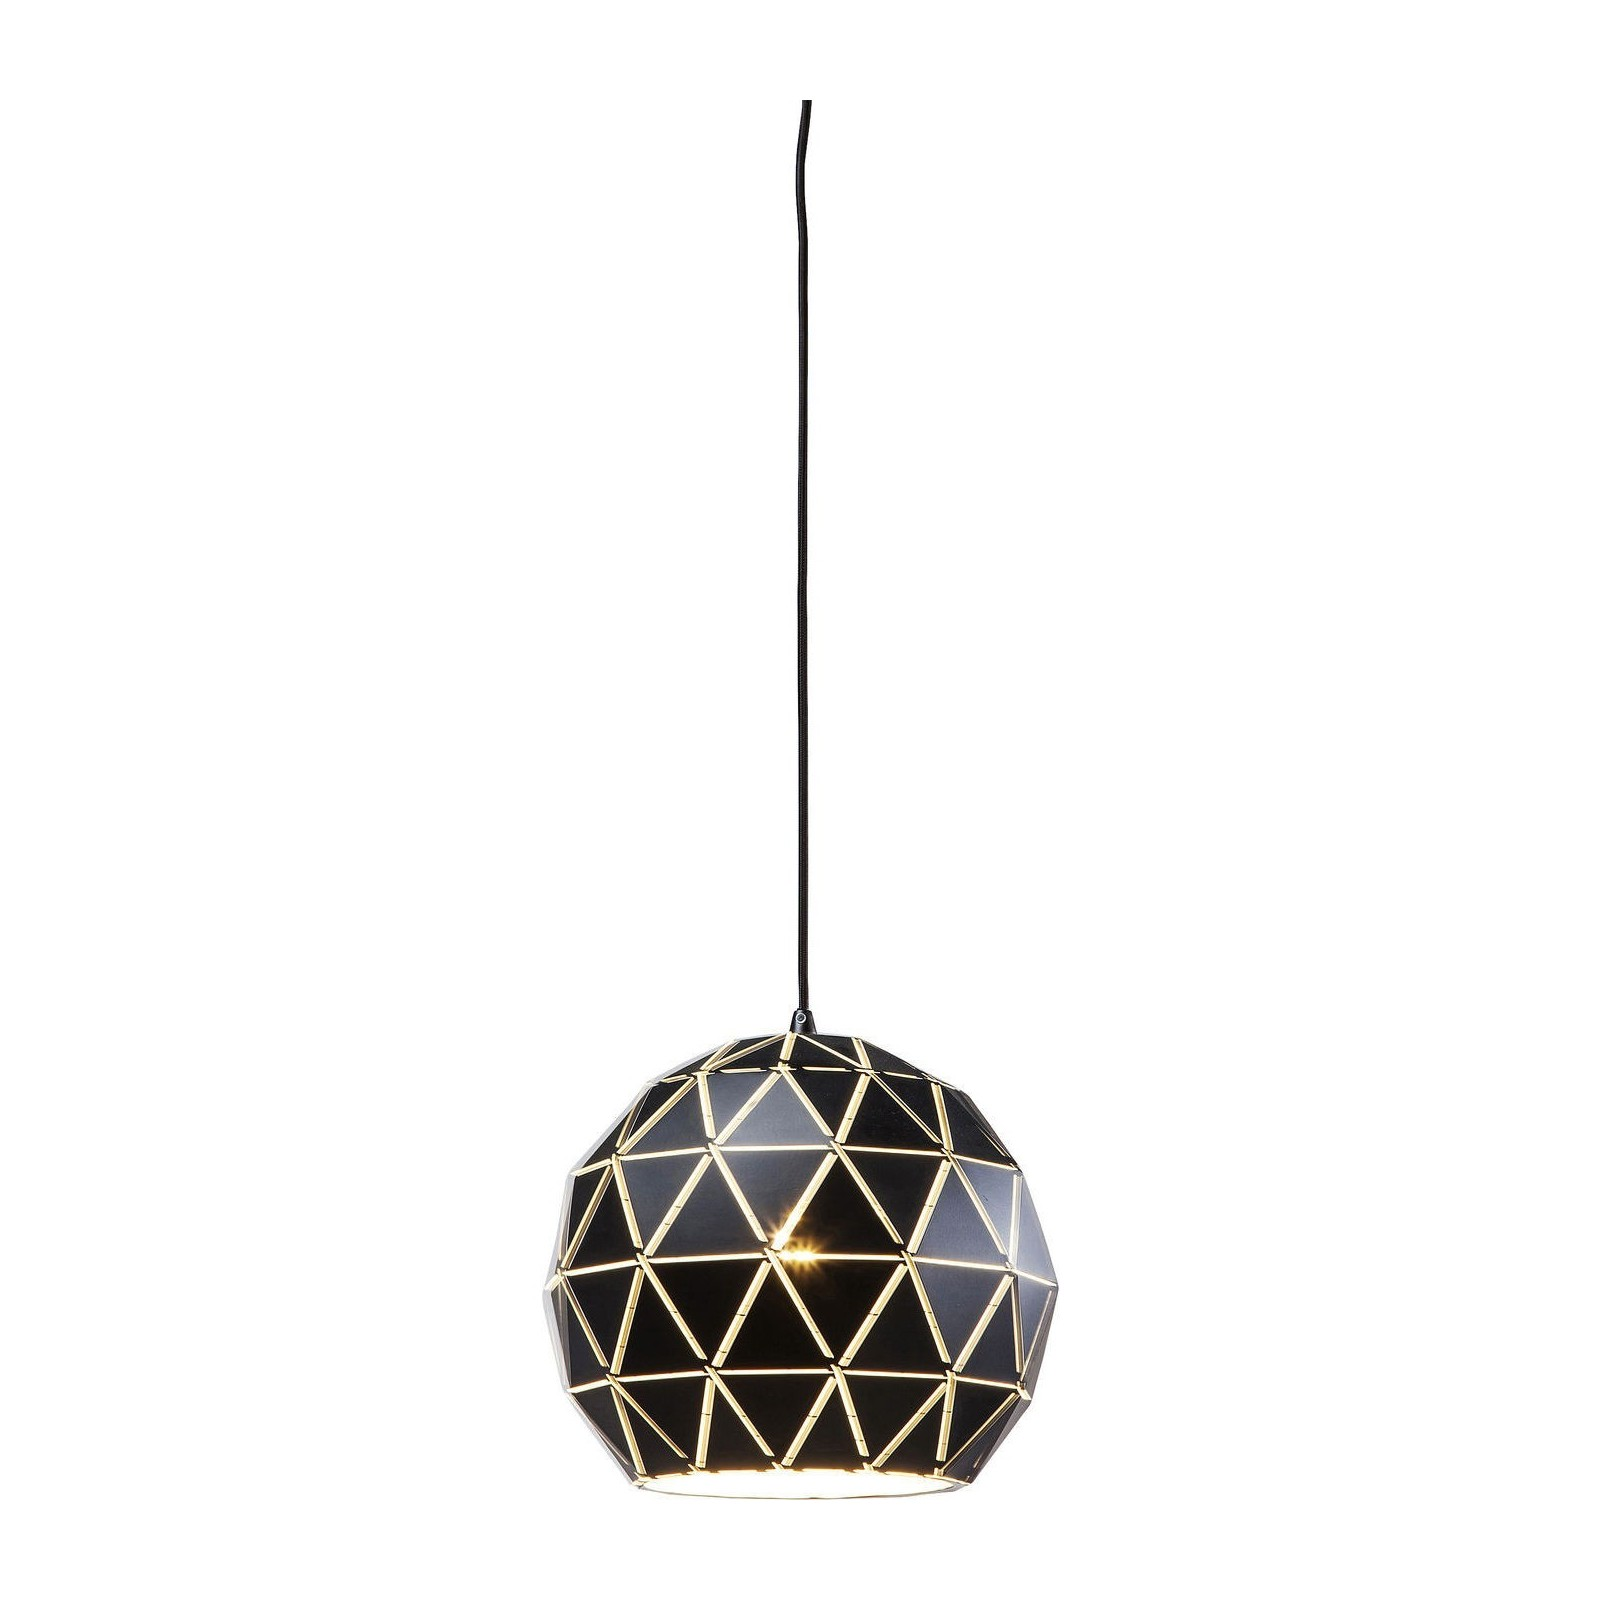 Suspension triangle noire 60cm kare design for Suspension luminaire noir et or